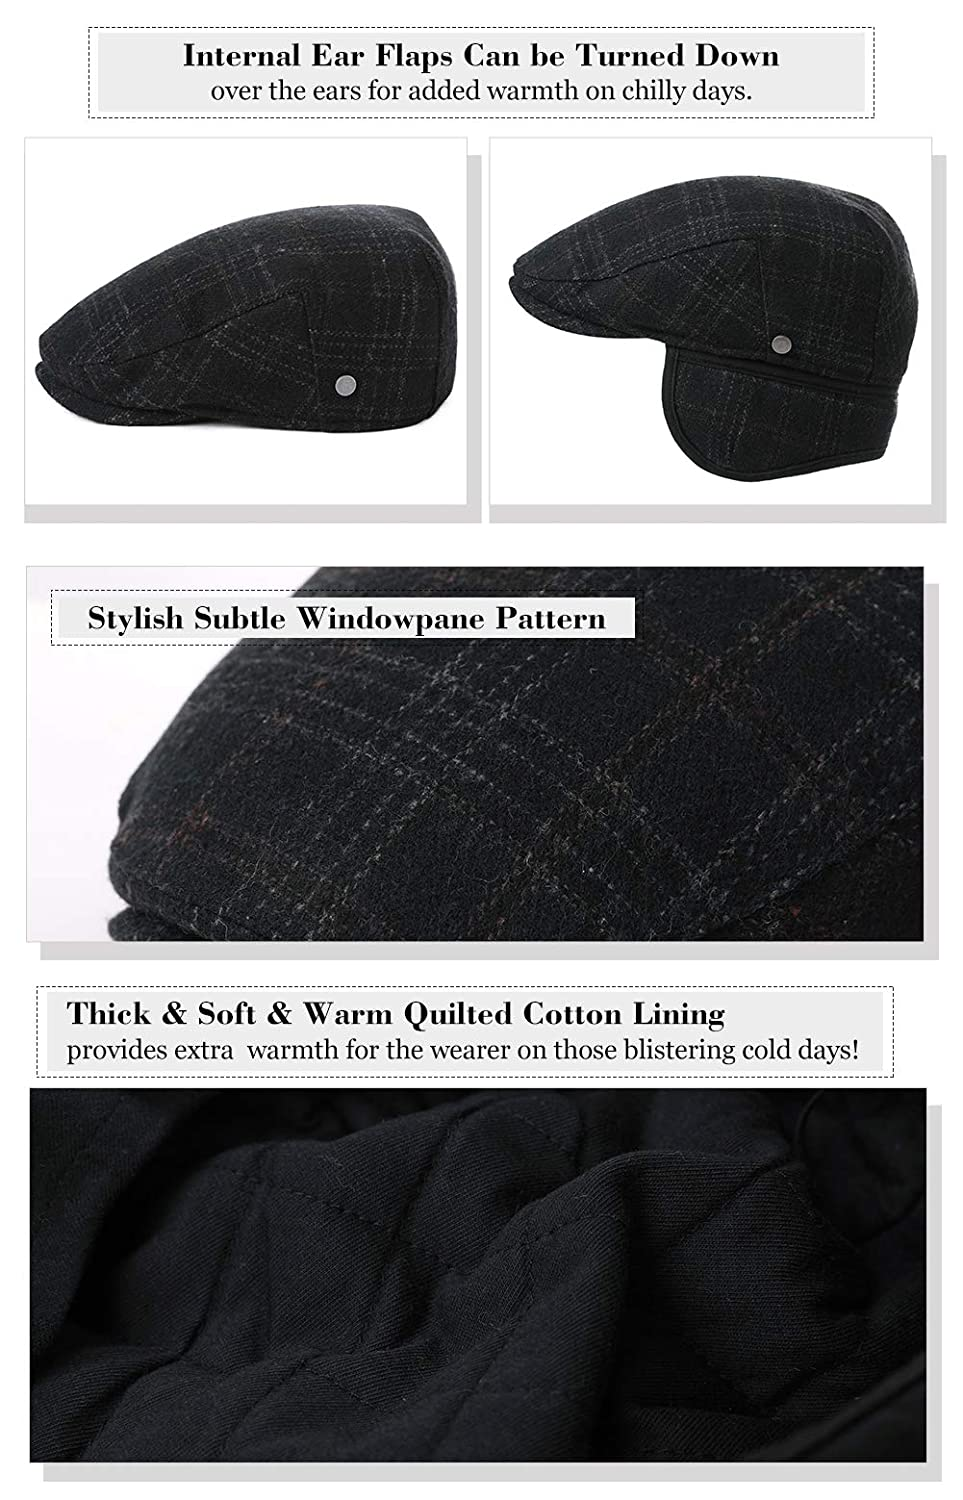 ad5da60e5bb Siggi Wool Tweed Flat Cap Ivy Hat with Ear Flaps Warmer Winter Earflap  Hunting Trapper Hat for Men  Amazon.co.uk  Clothing